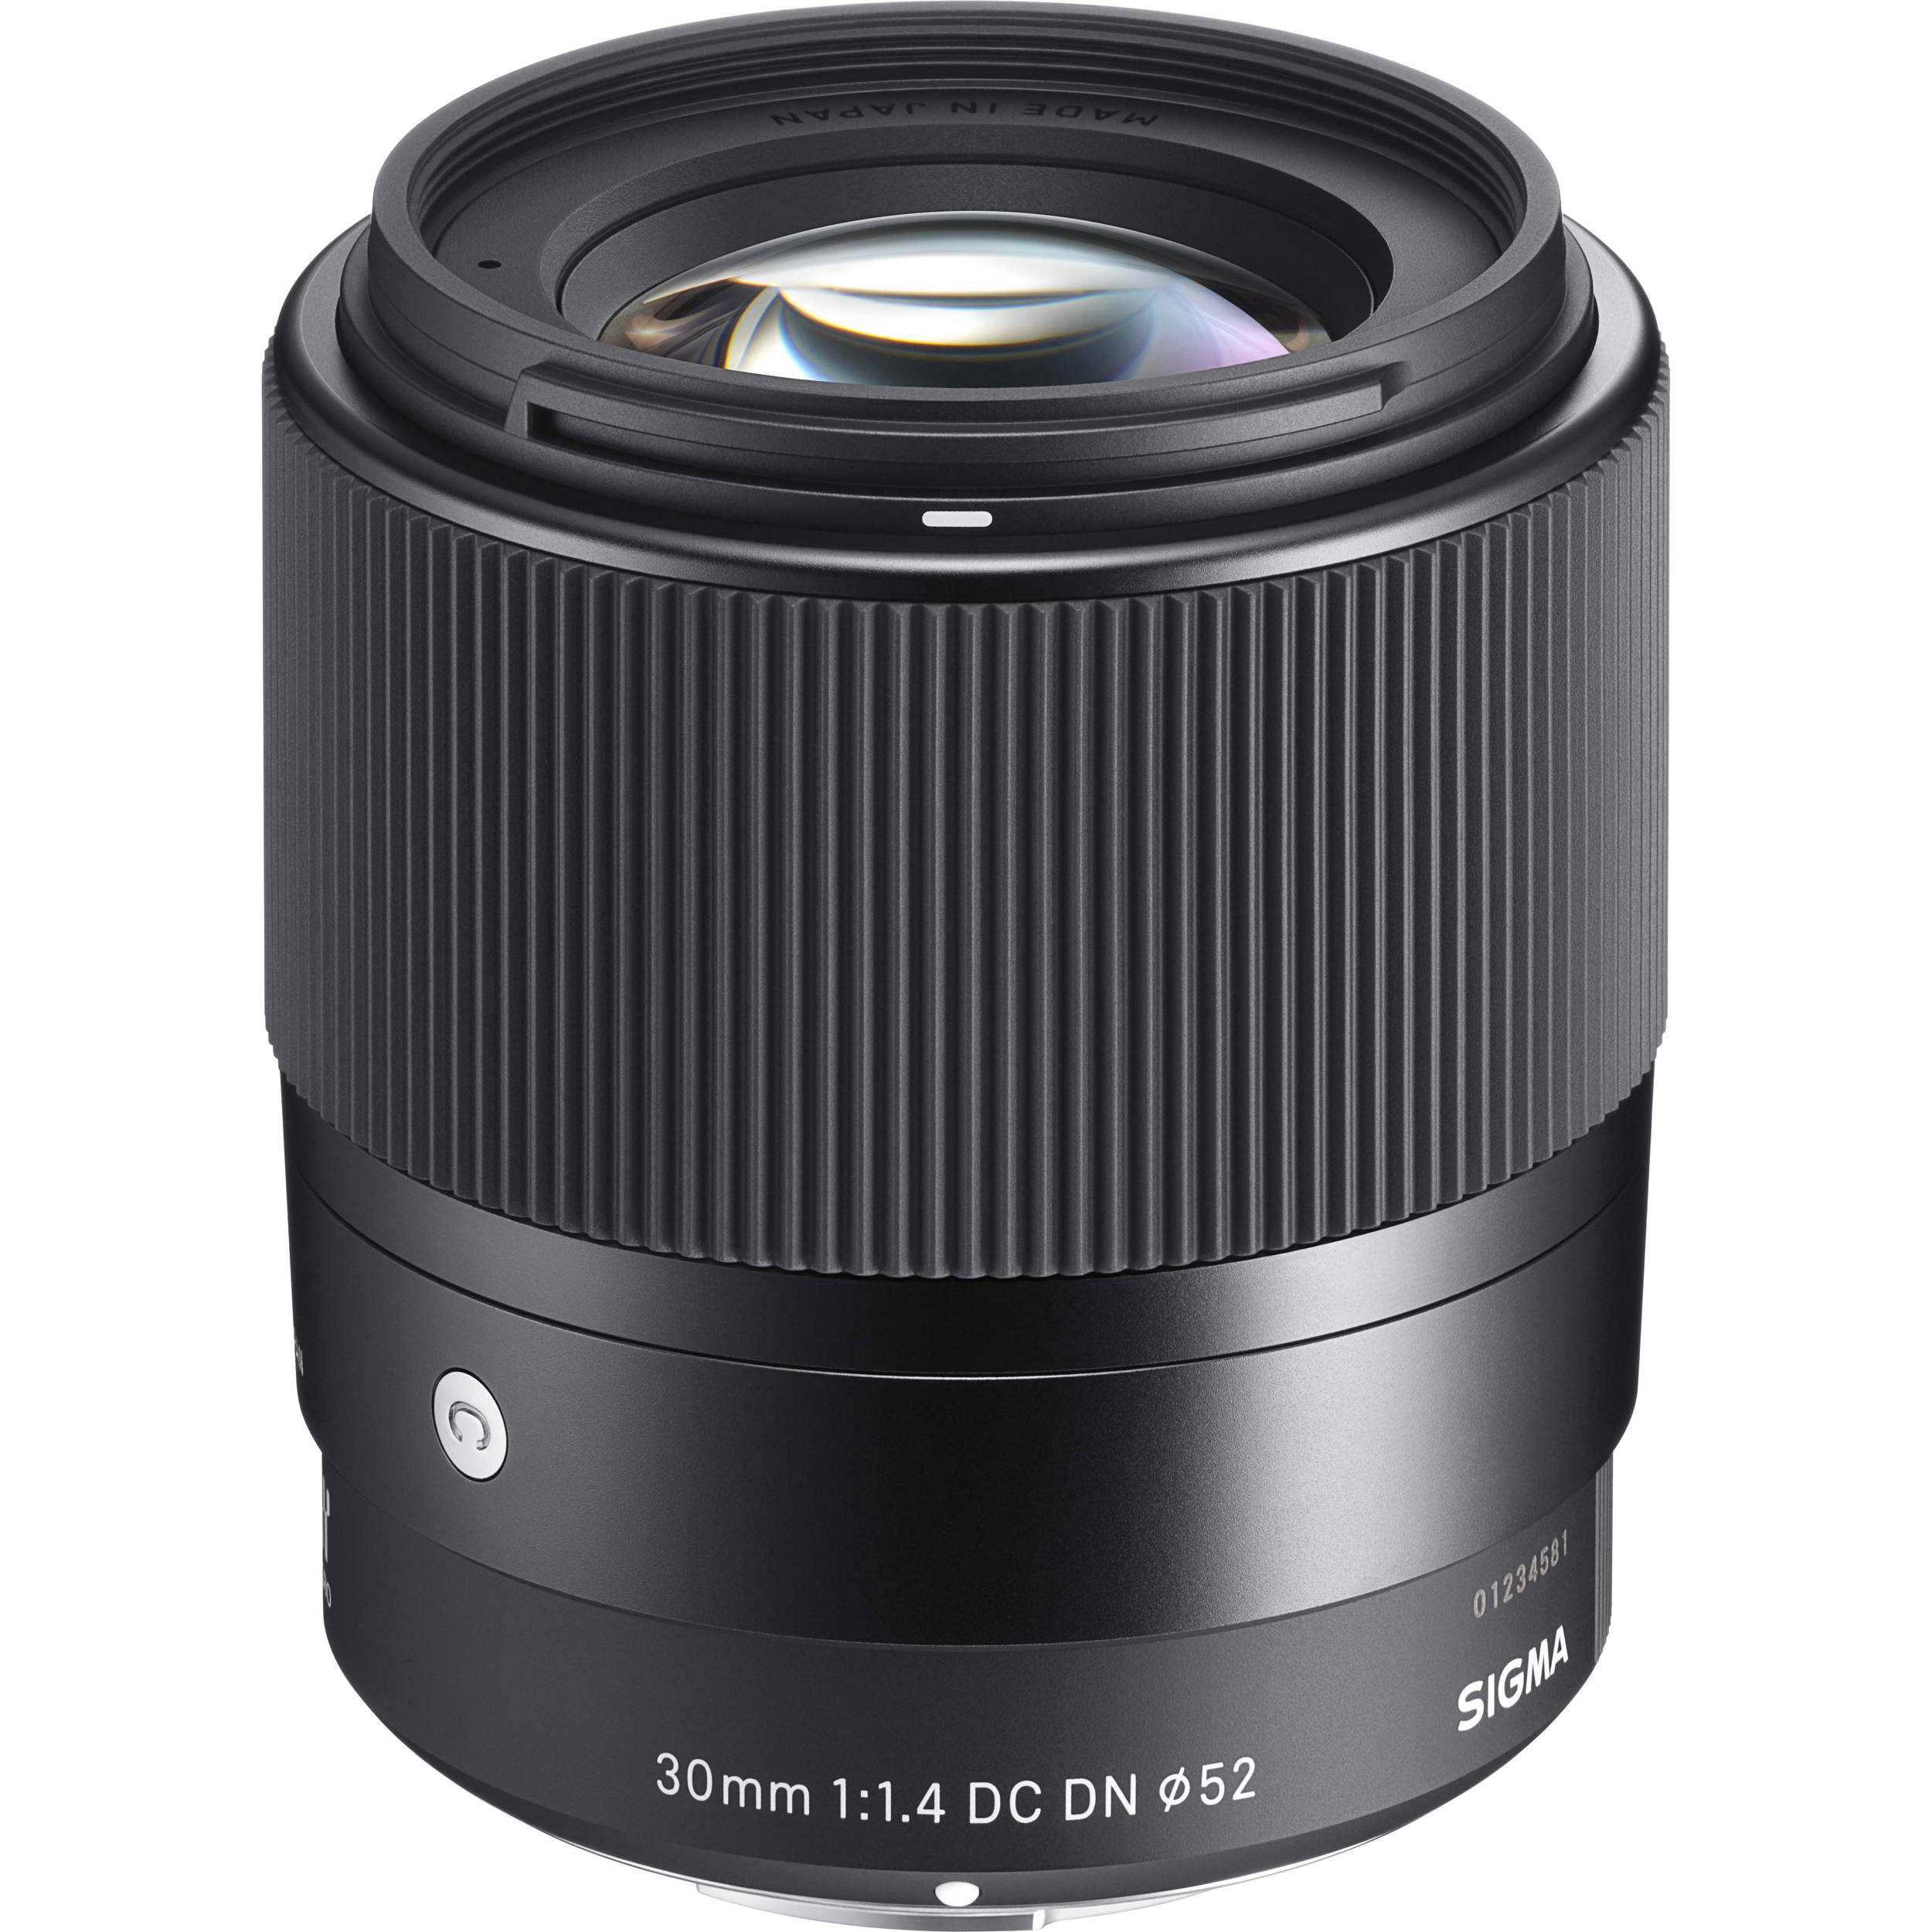 Sigma 30mm f/1.4 DC DN Contemporary Lens Sony E MFT M4/3